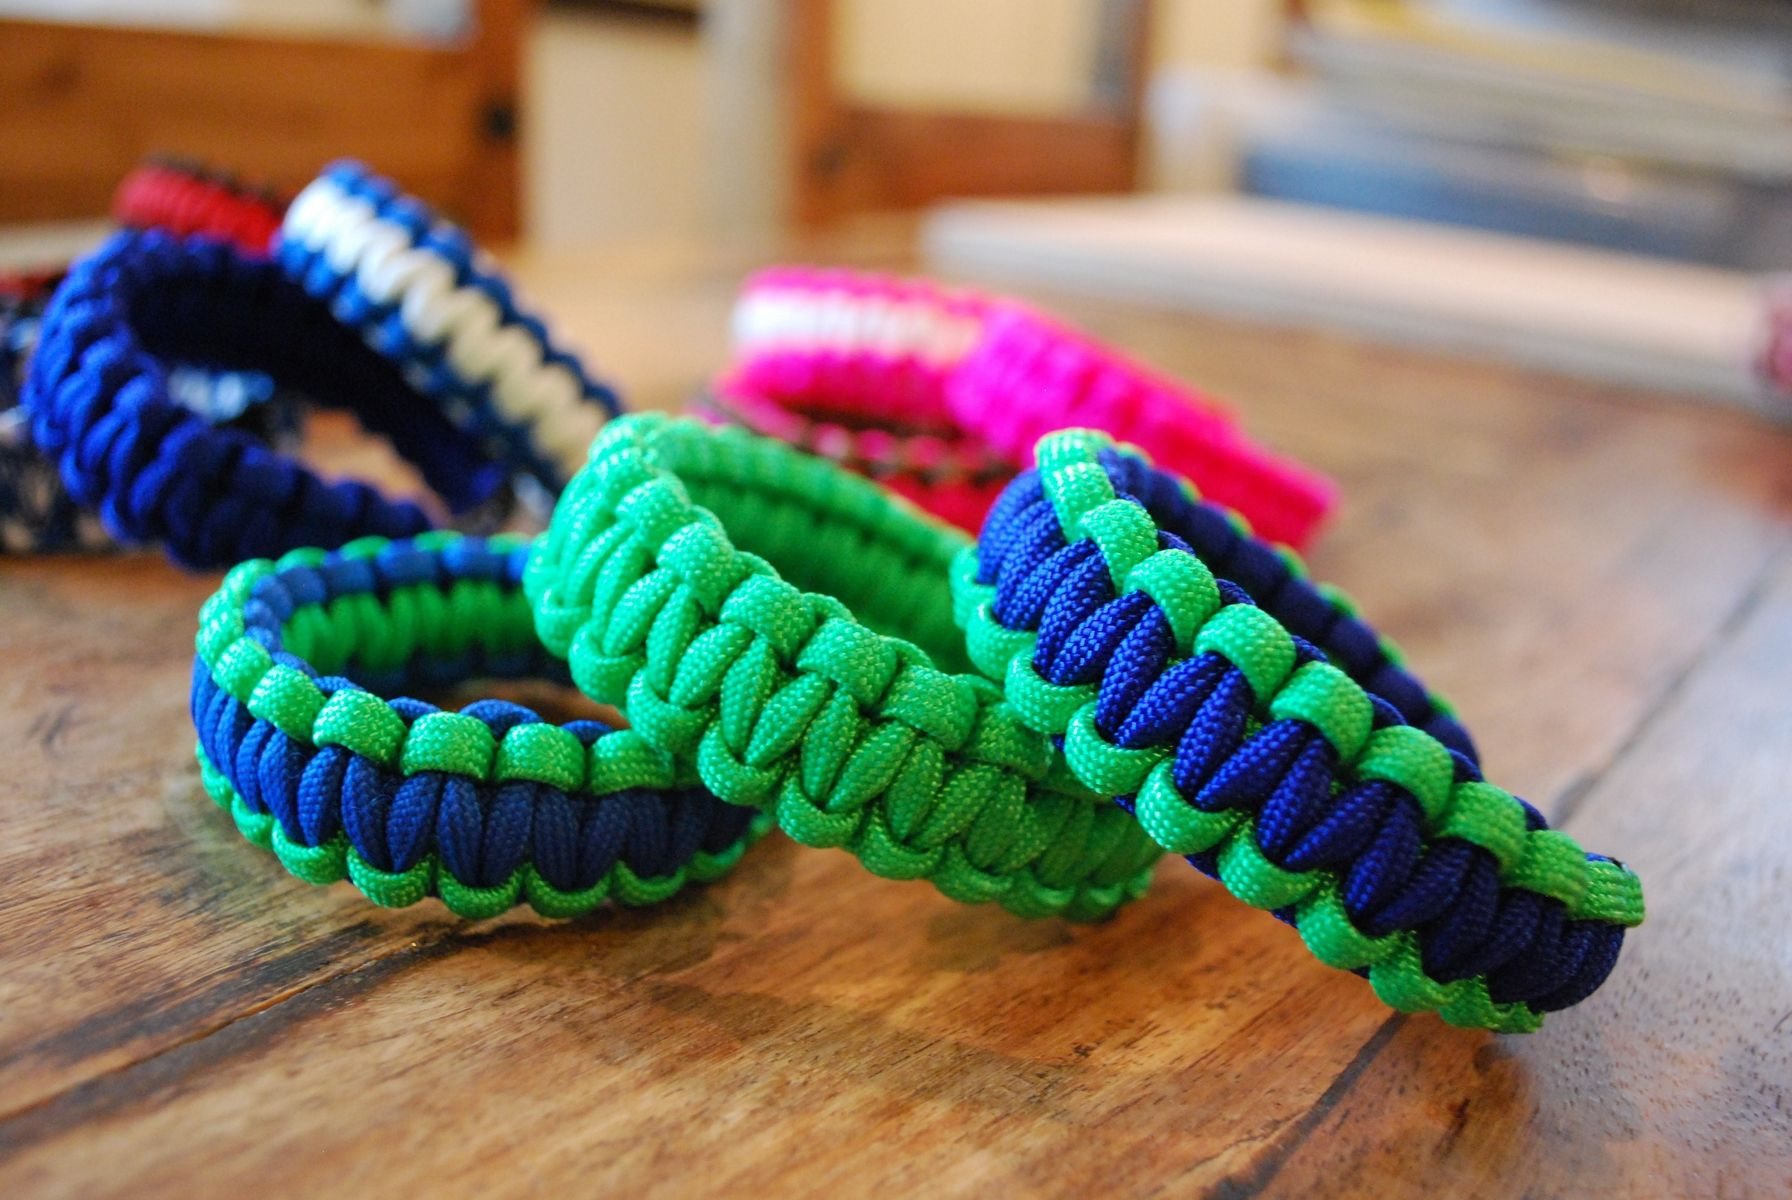 crafted paracord bracelets by olallaberry farm quilt